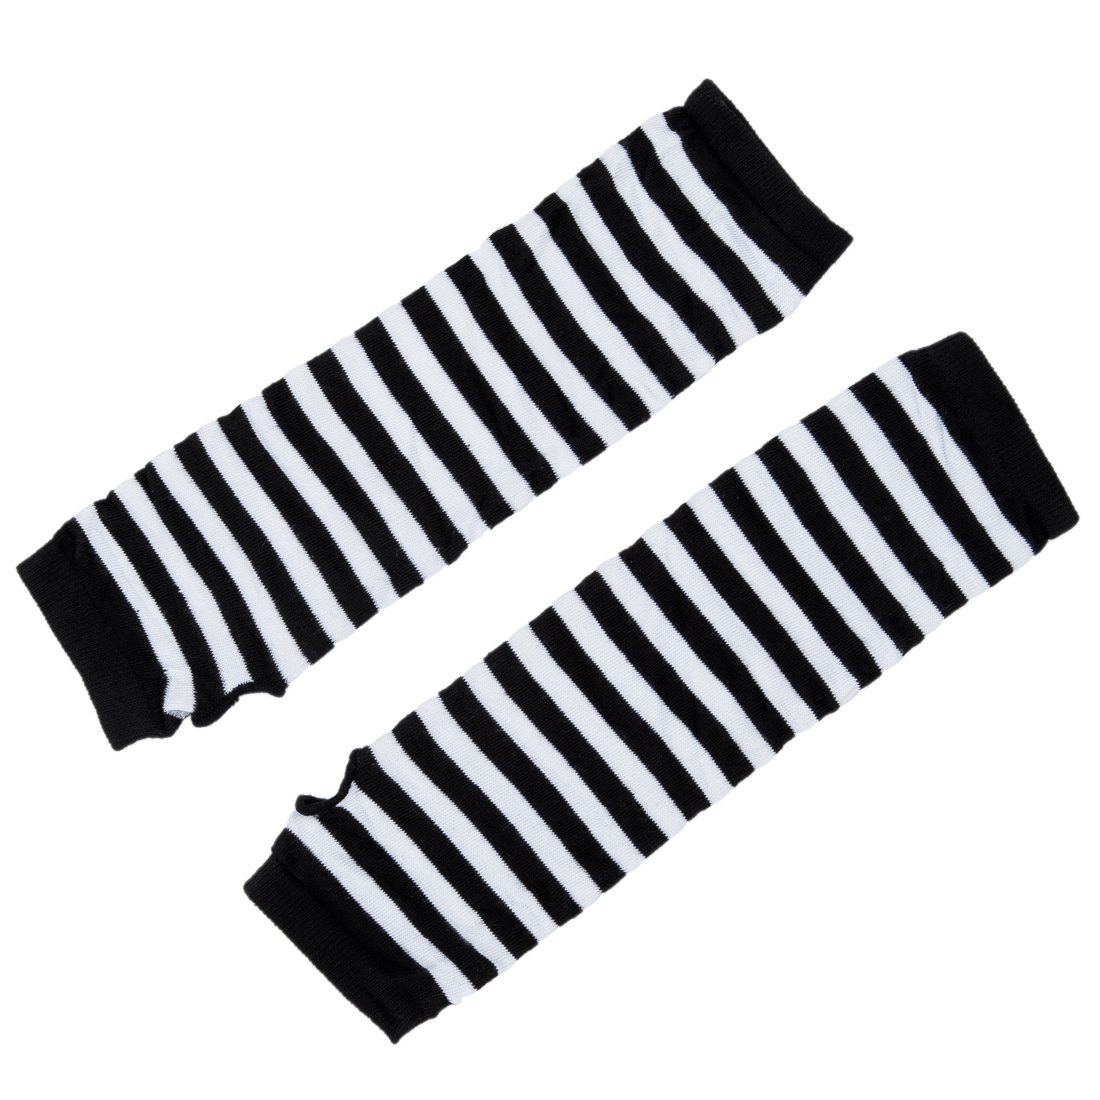 ̿̿̿(•̪ )ELOS-Stylish Winter Warm Black White Striped Long Fingerless ...